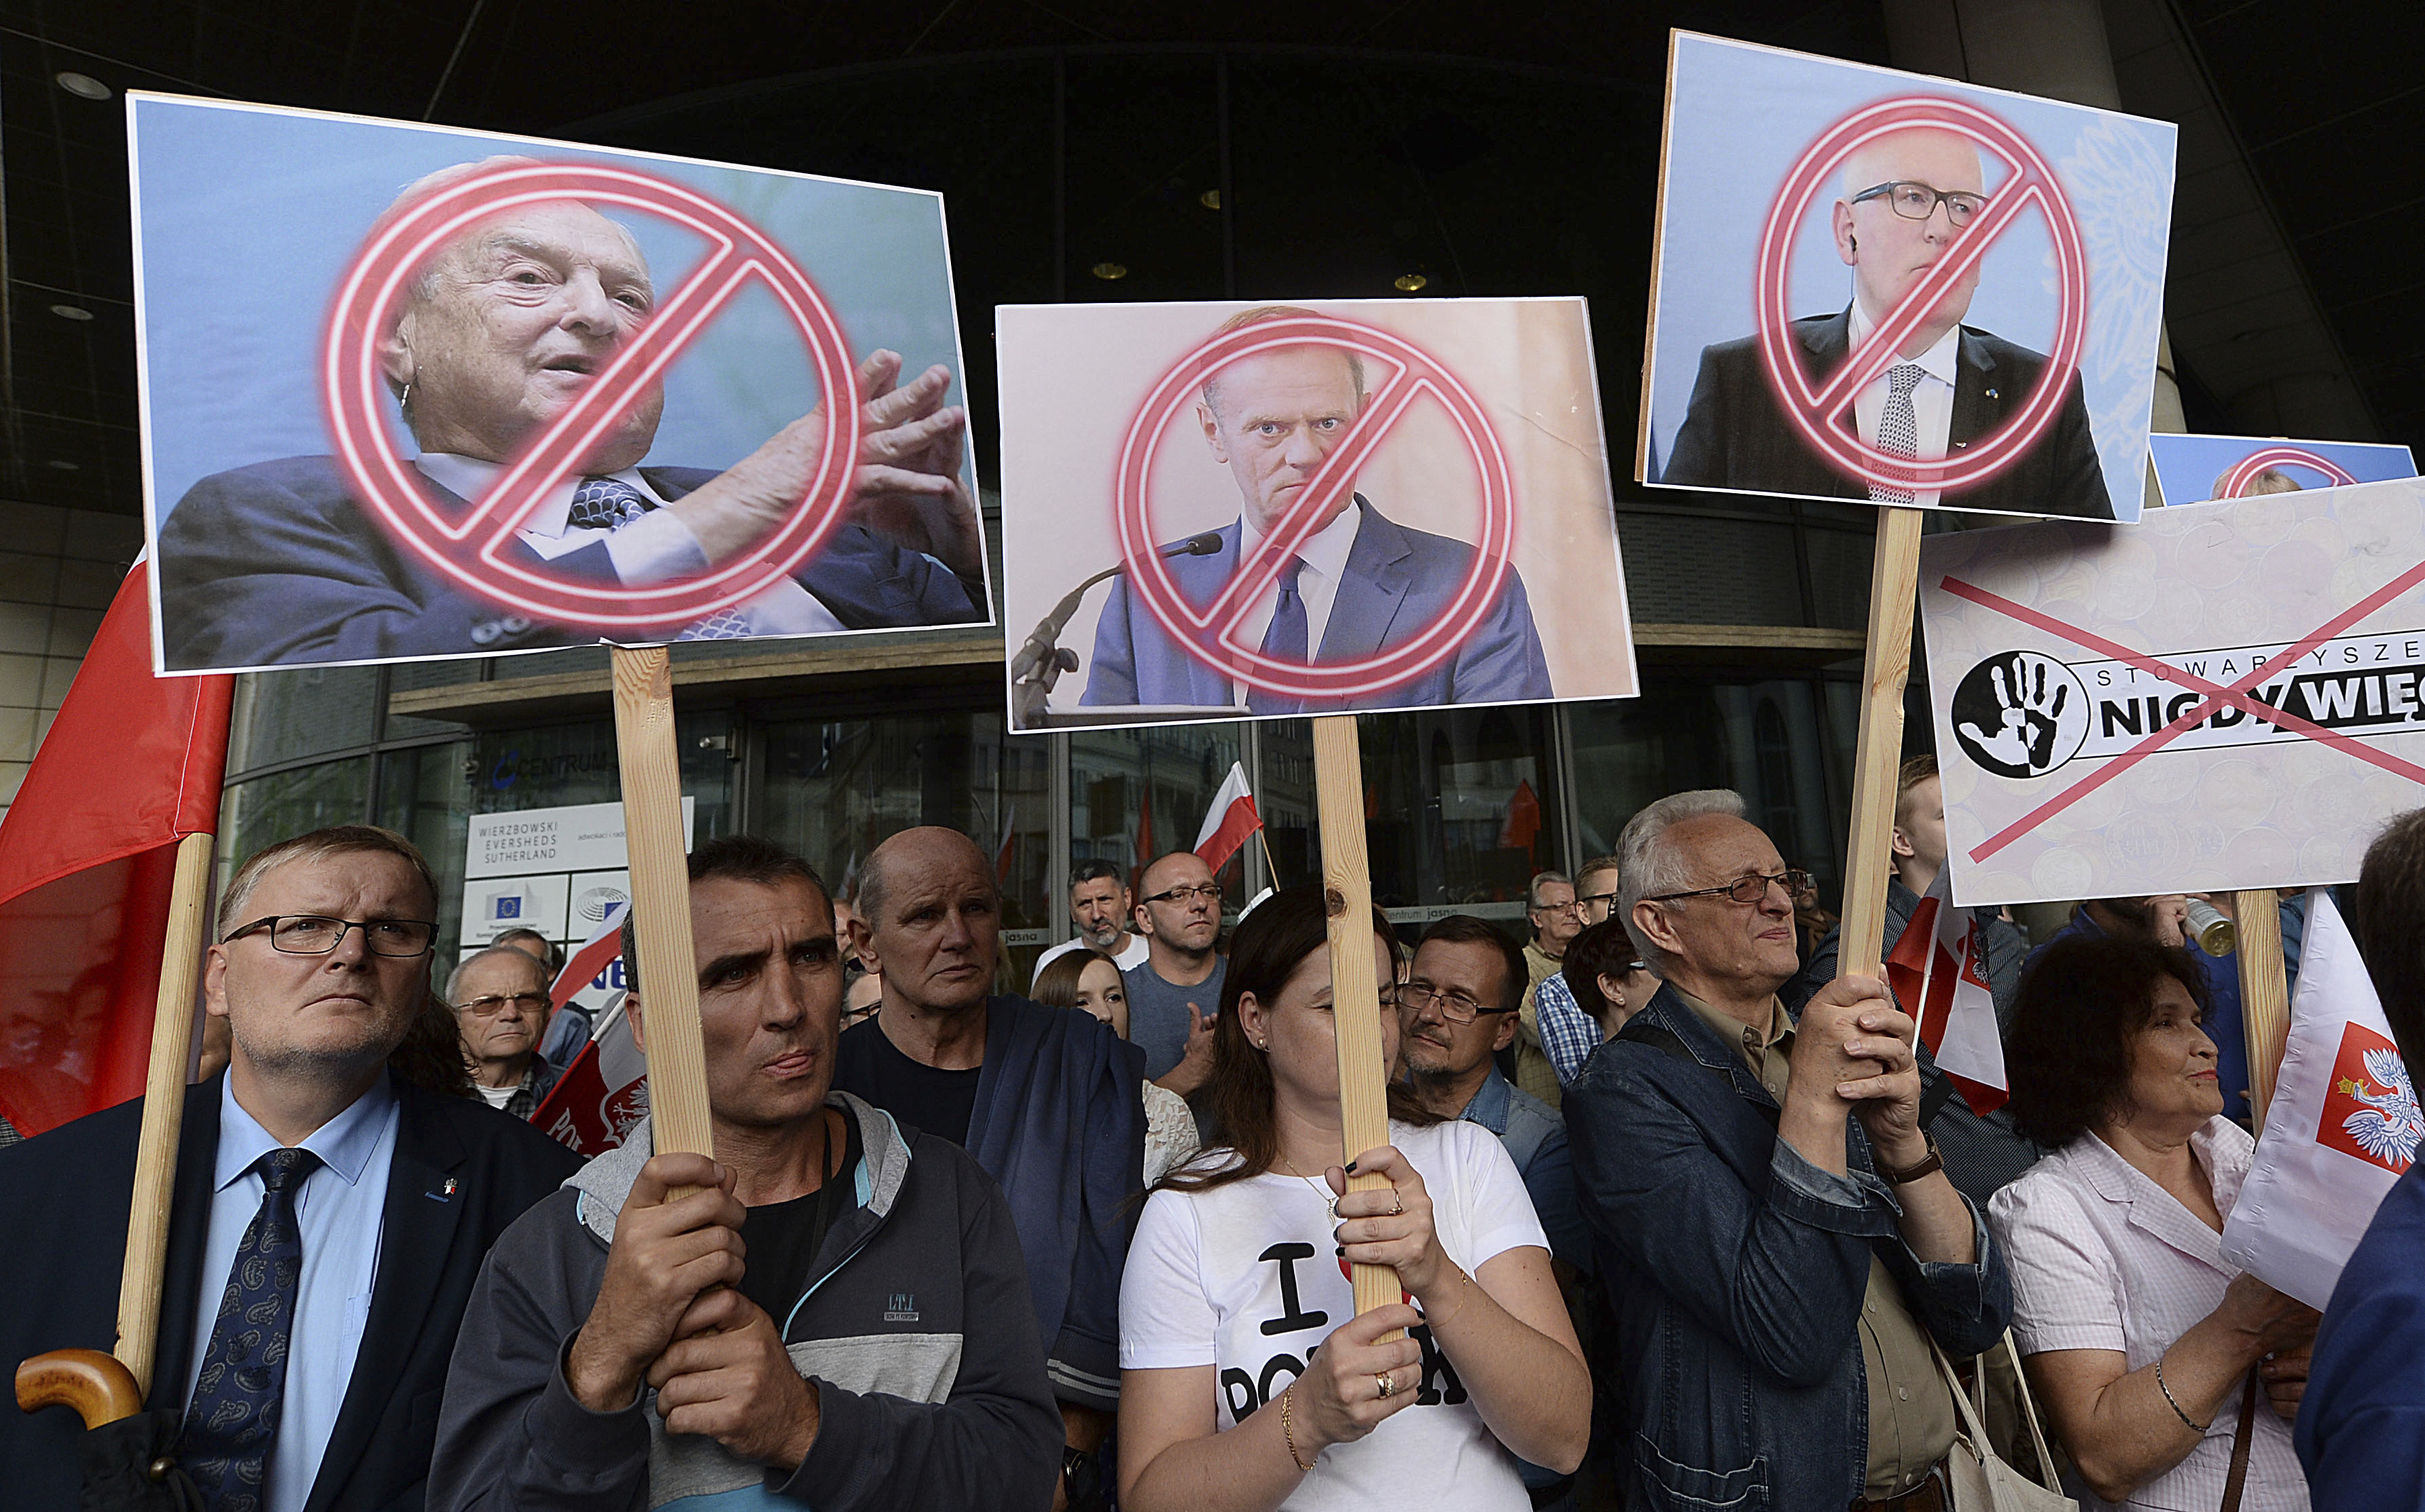 People demonstrate, outside the office of the ruling party leader Jaroslaw Kaczynski, holding banners with the images of from left, financier George Soros ,President of the European Council Donald Tusk and First Vice-President of the European Commission Frans Timmermans, during a protest, in Warsaw, Poland, Wednesday, July 26, 2017